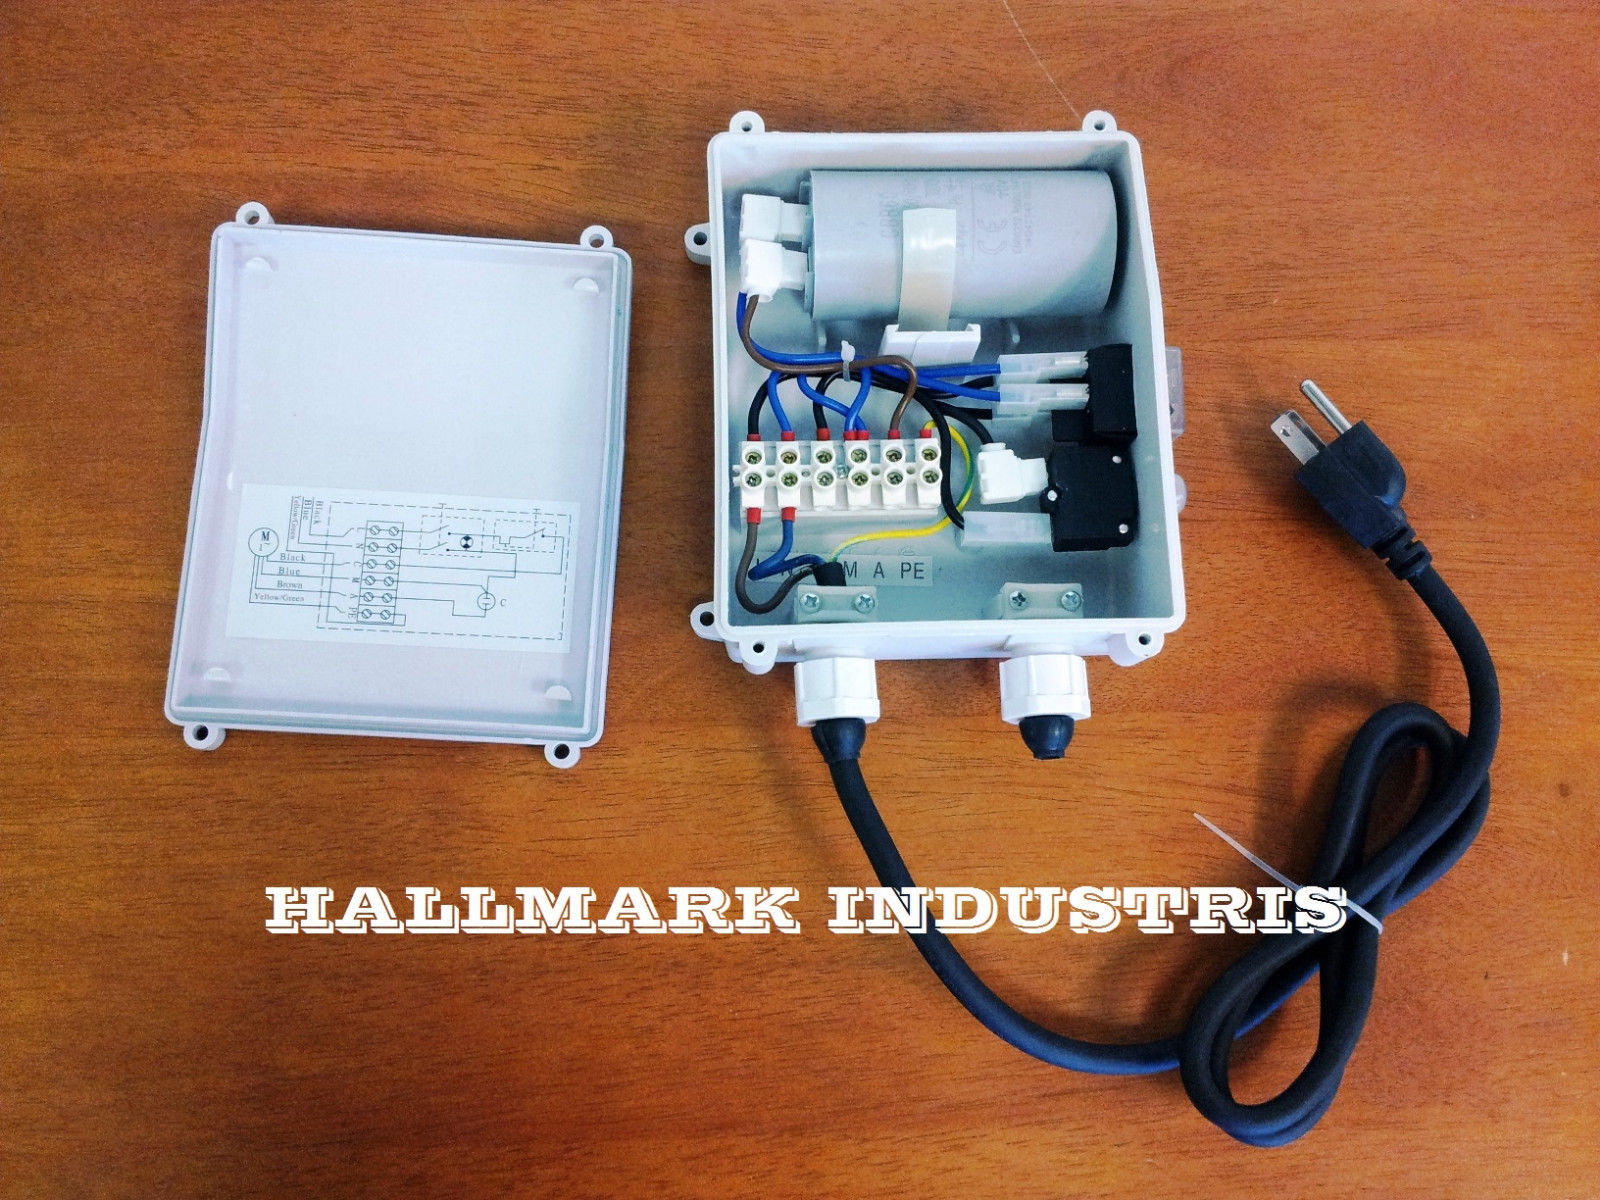 Hallmark Industries Pump Control Box - Well Pump Control Box Wiring Diagram